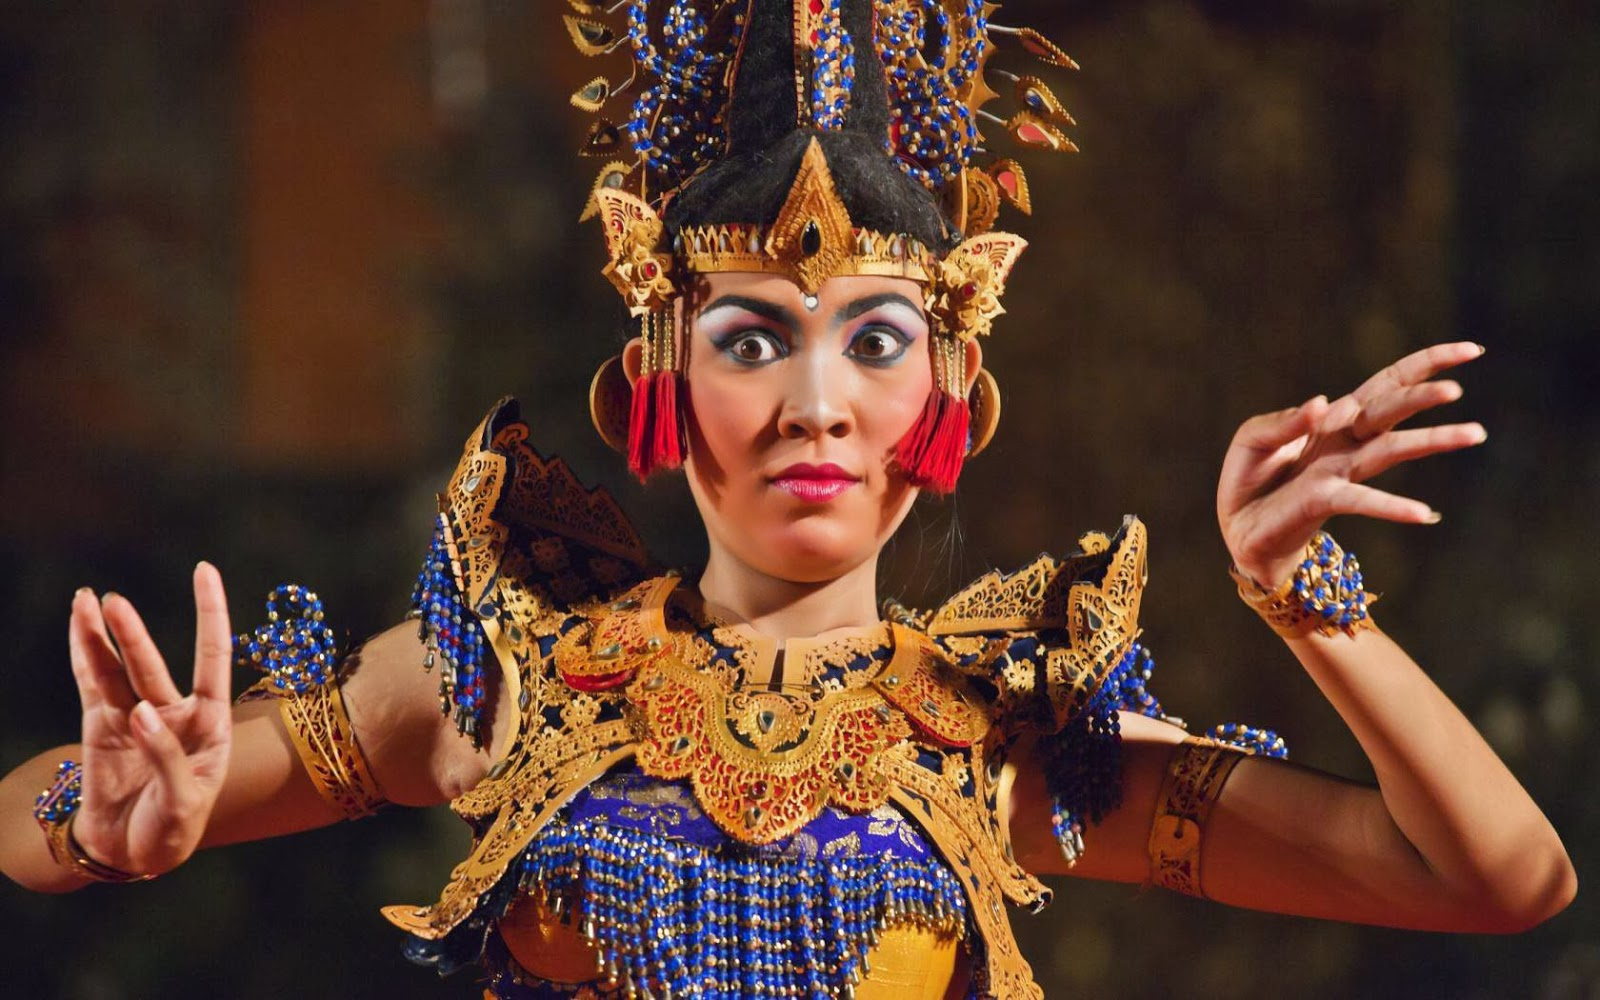 Symbolism in Balinese Dance Costumes